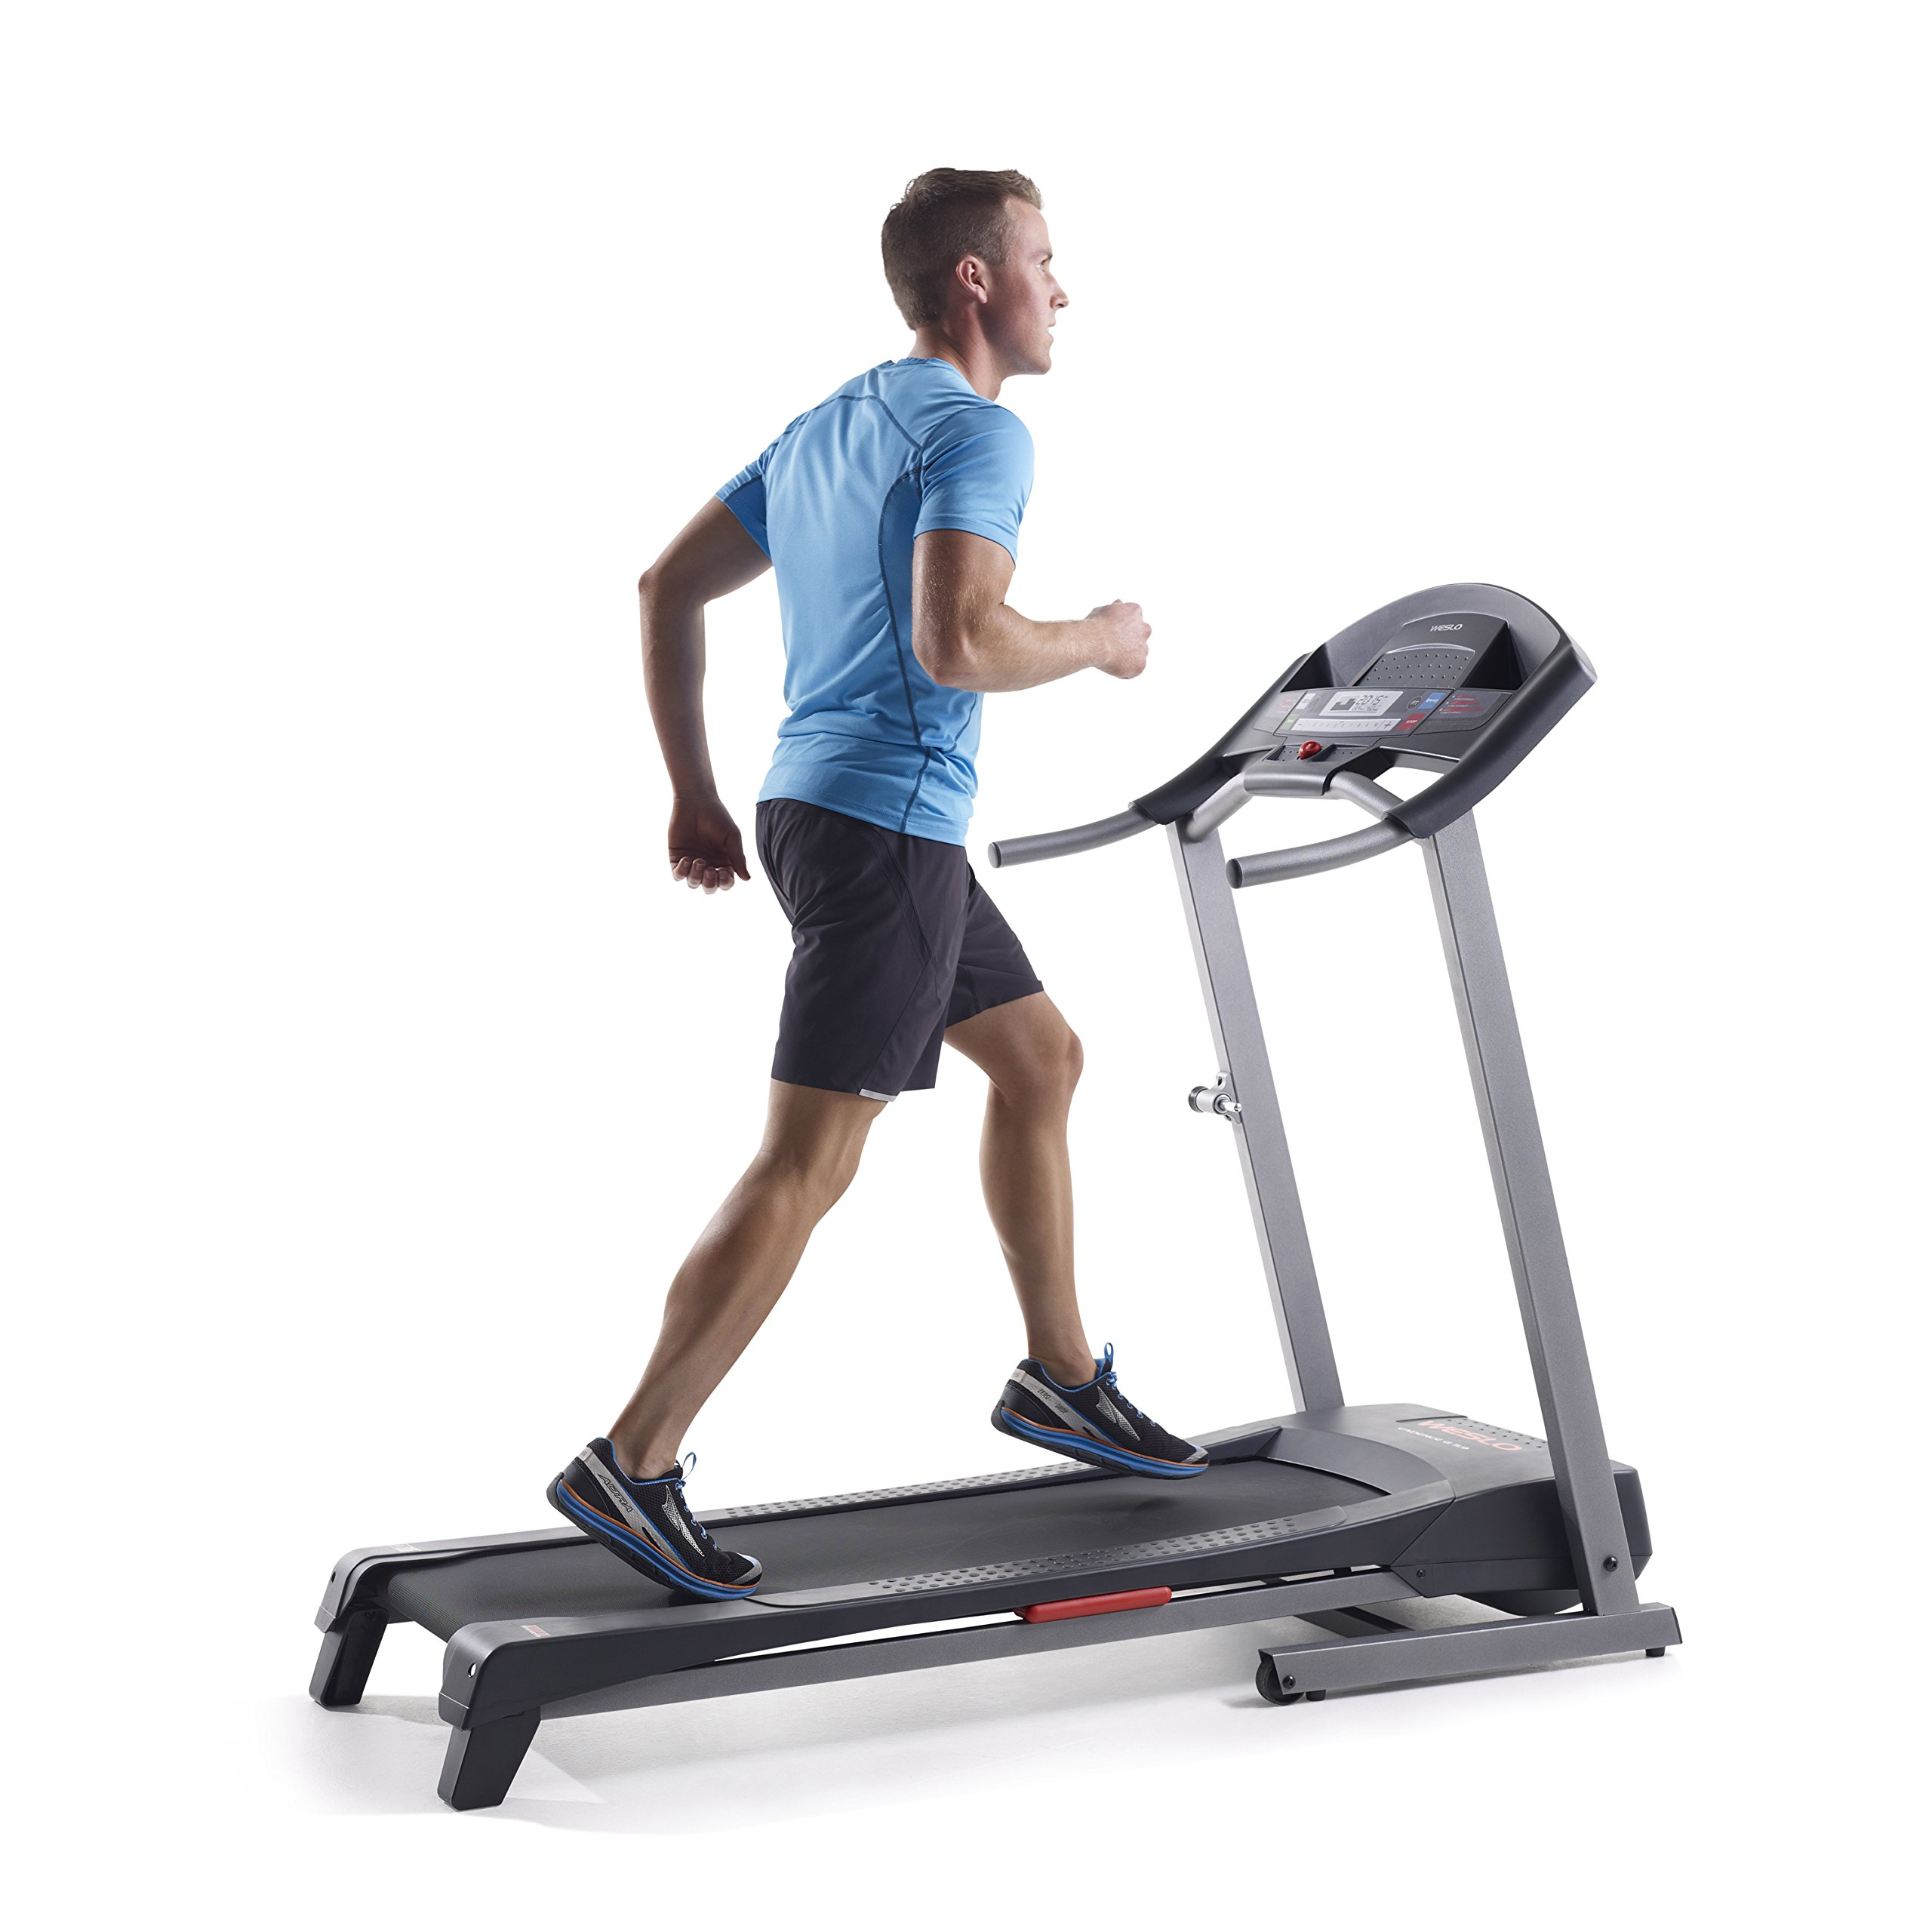 Weslo Cadence G 5.9i Treadmill with Bluetooth by Weslo